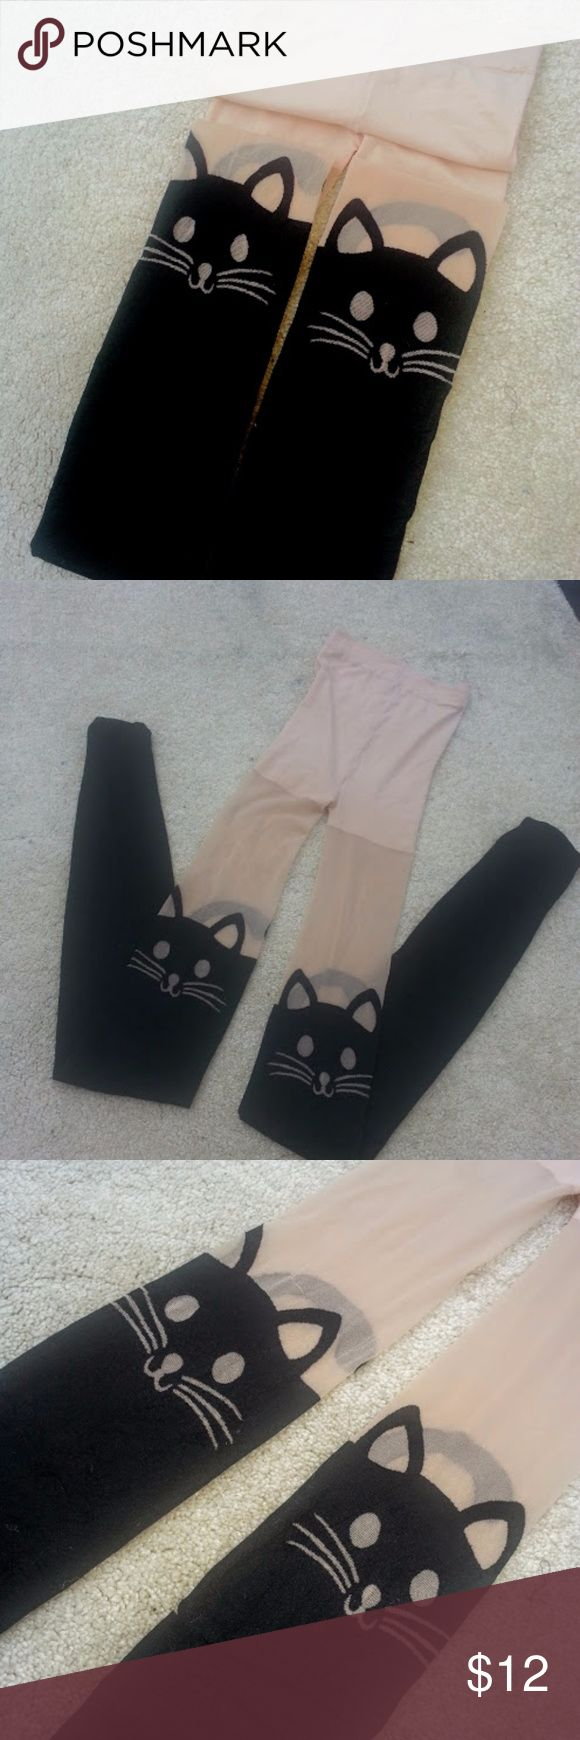 Kitty tights Can you say adorbs?? :)  These are the cutest tights I've ever seen!! The kitty face hits above the knee, about mid thigh, depending on how tall you are, so these would look great peeking over the top of a pair of knee high boots. From the back you can see kittys tail! So cute!! NWOT. Fit wise, these are good for someone who is med height, med to smallish size. Tall but thin would work too.  I'd guess size 0-6, 8 max (if you are shorter). Accessories Hosiery & Socks